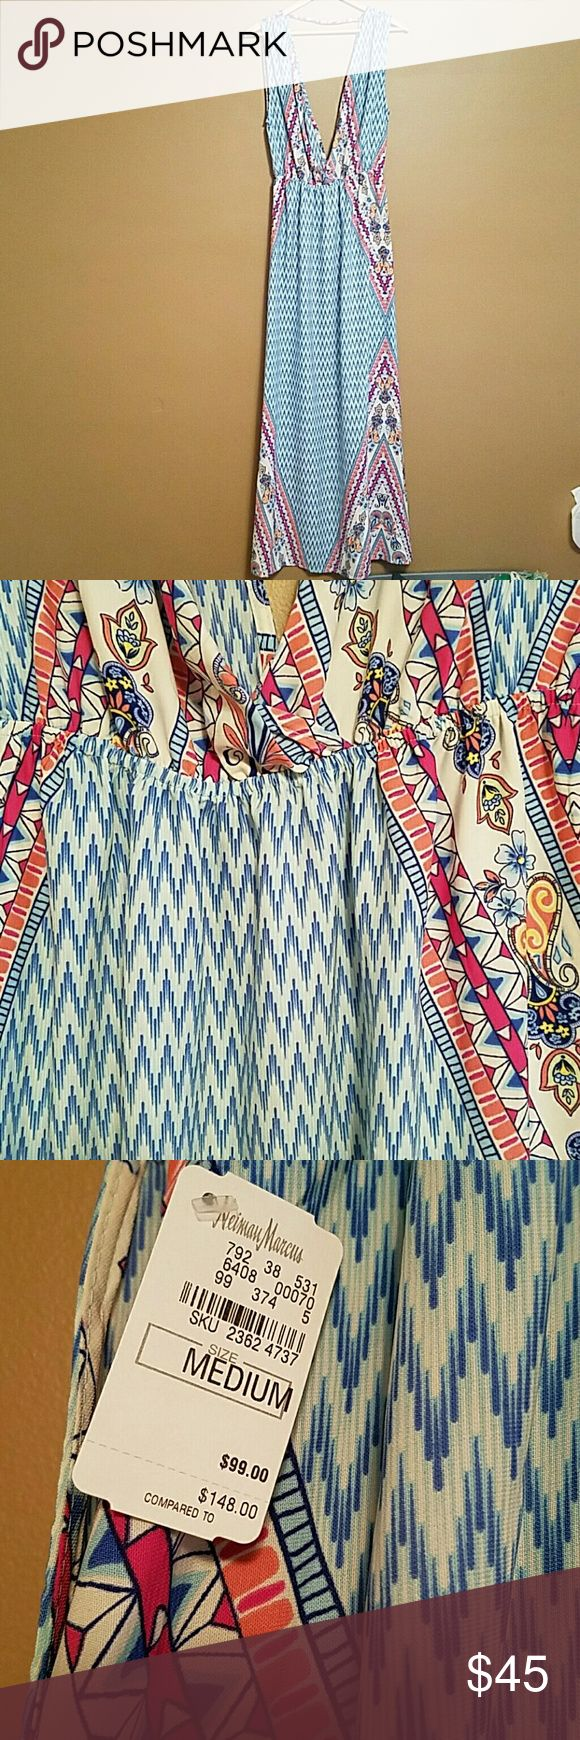 NWT Neiman Marcus Maxi Dress M Brand new with tags dress from  Neiman Marcus. Plunging neckline and gathered waist. Absolutely perfect for a summer date!!! Neiman Marcus Dresses Maxi